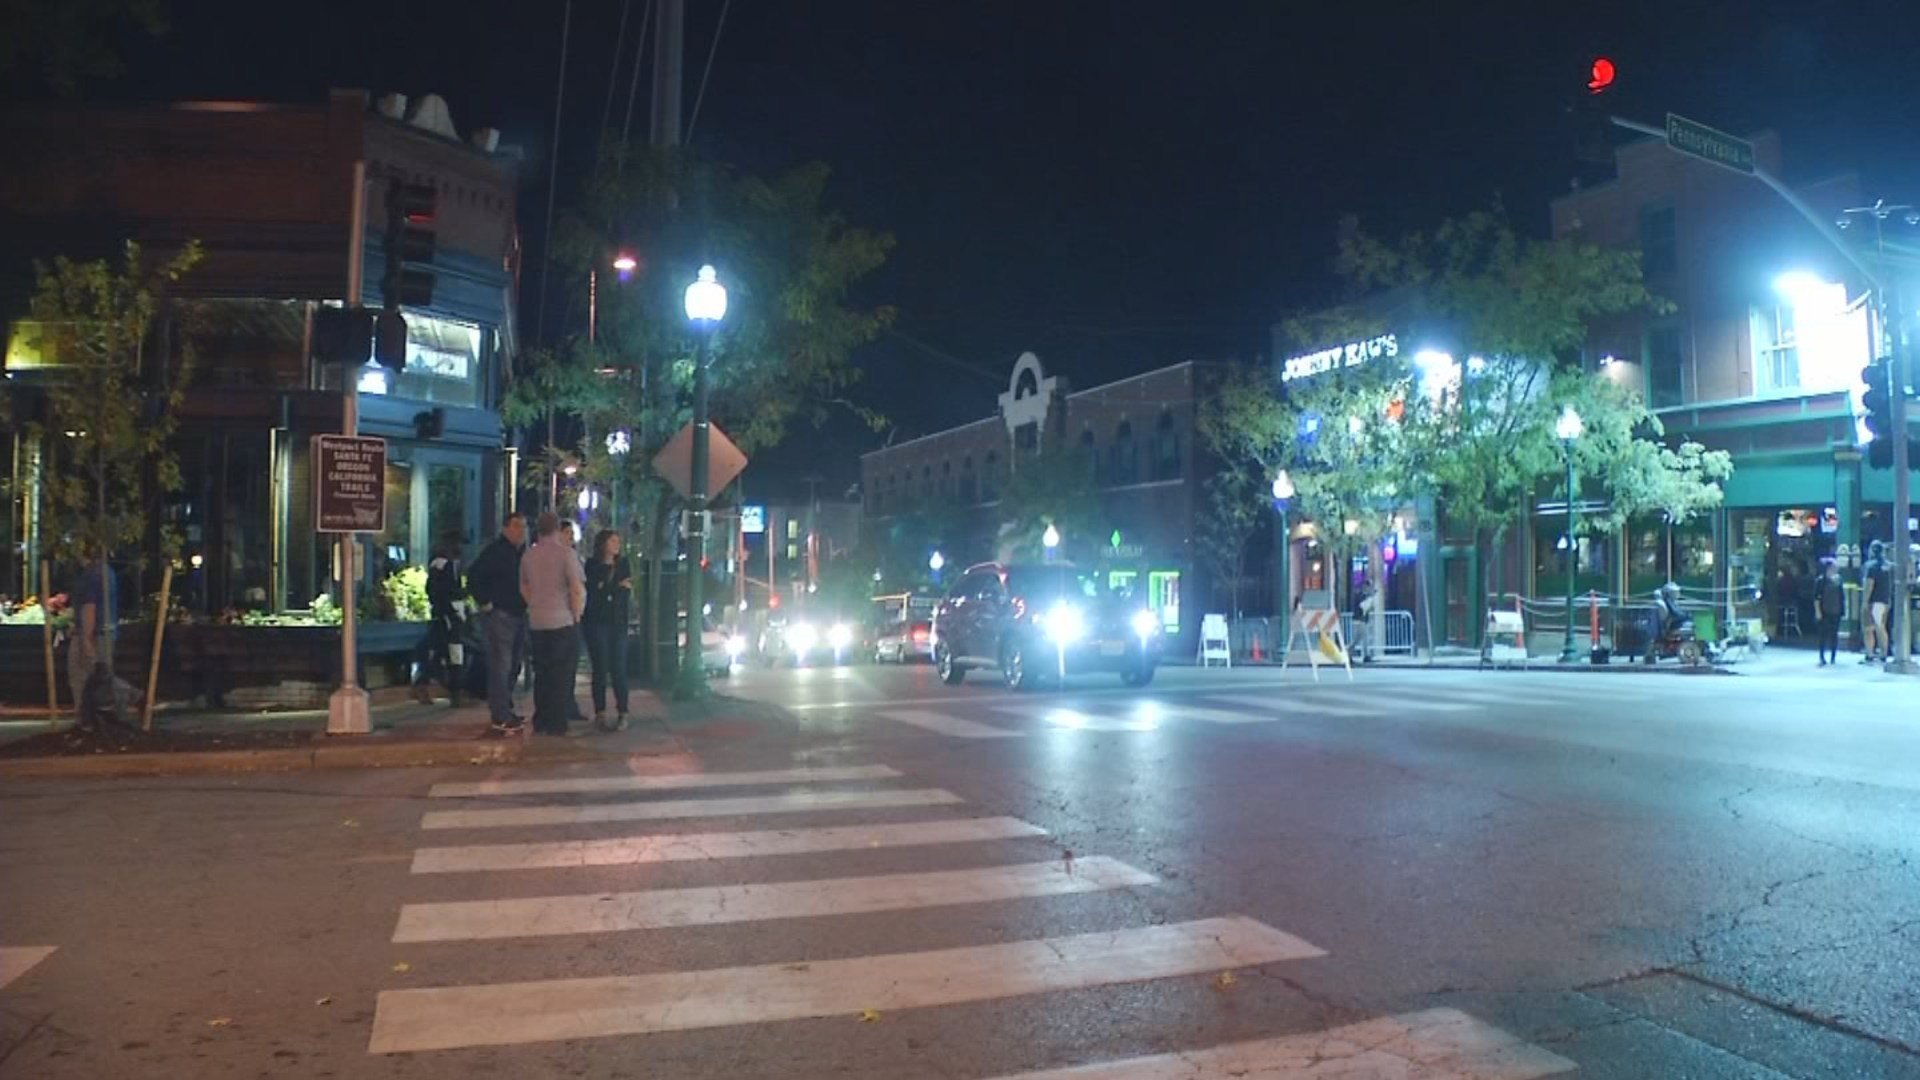 It's Friday night, and many people will be headed out to bars and restaurants in Westport, and tonight for the first time they'll encounter new rules on entering the area and parking their cars. (KCTV5)